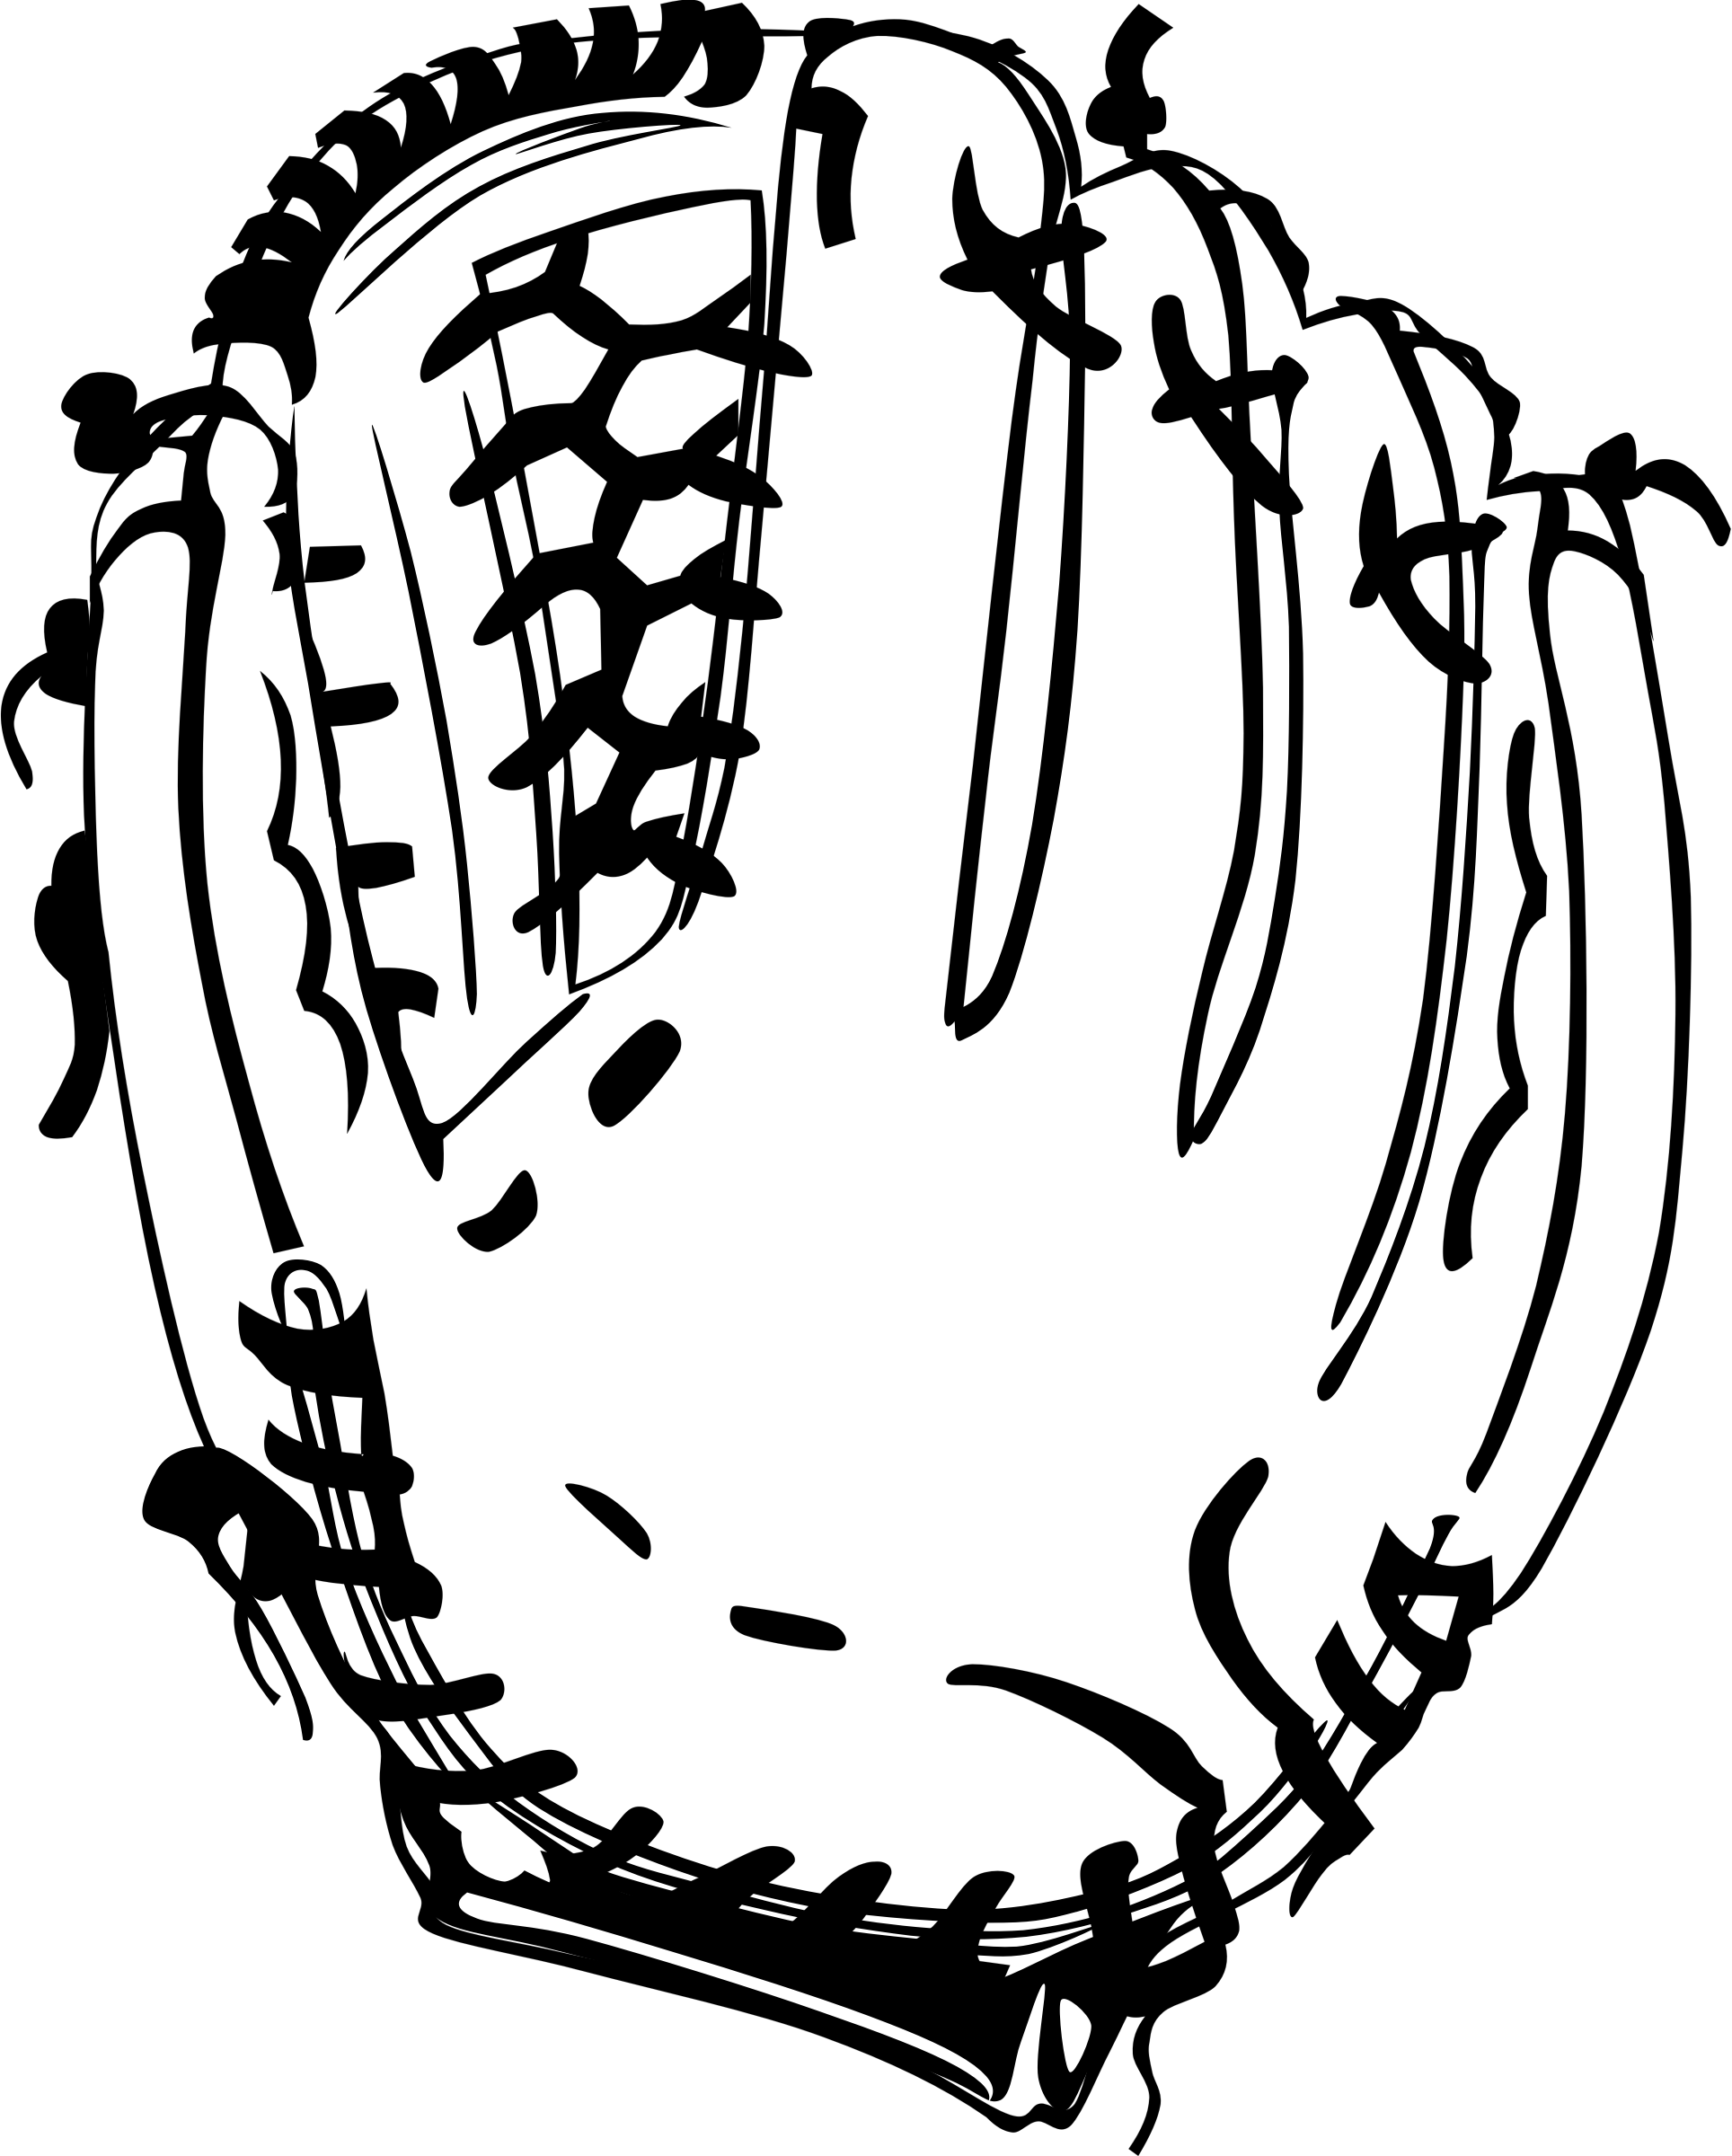 clipart baseball glove rh openclipart org baseball glove clipart free cartoon baseball glove clipart